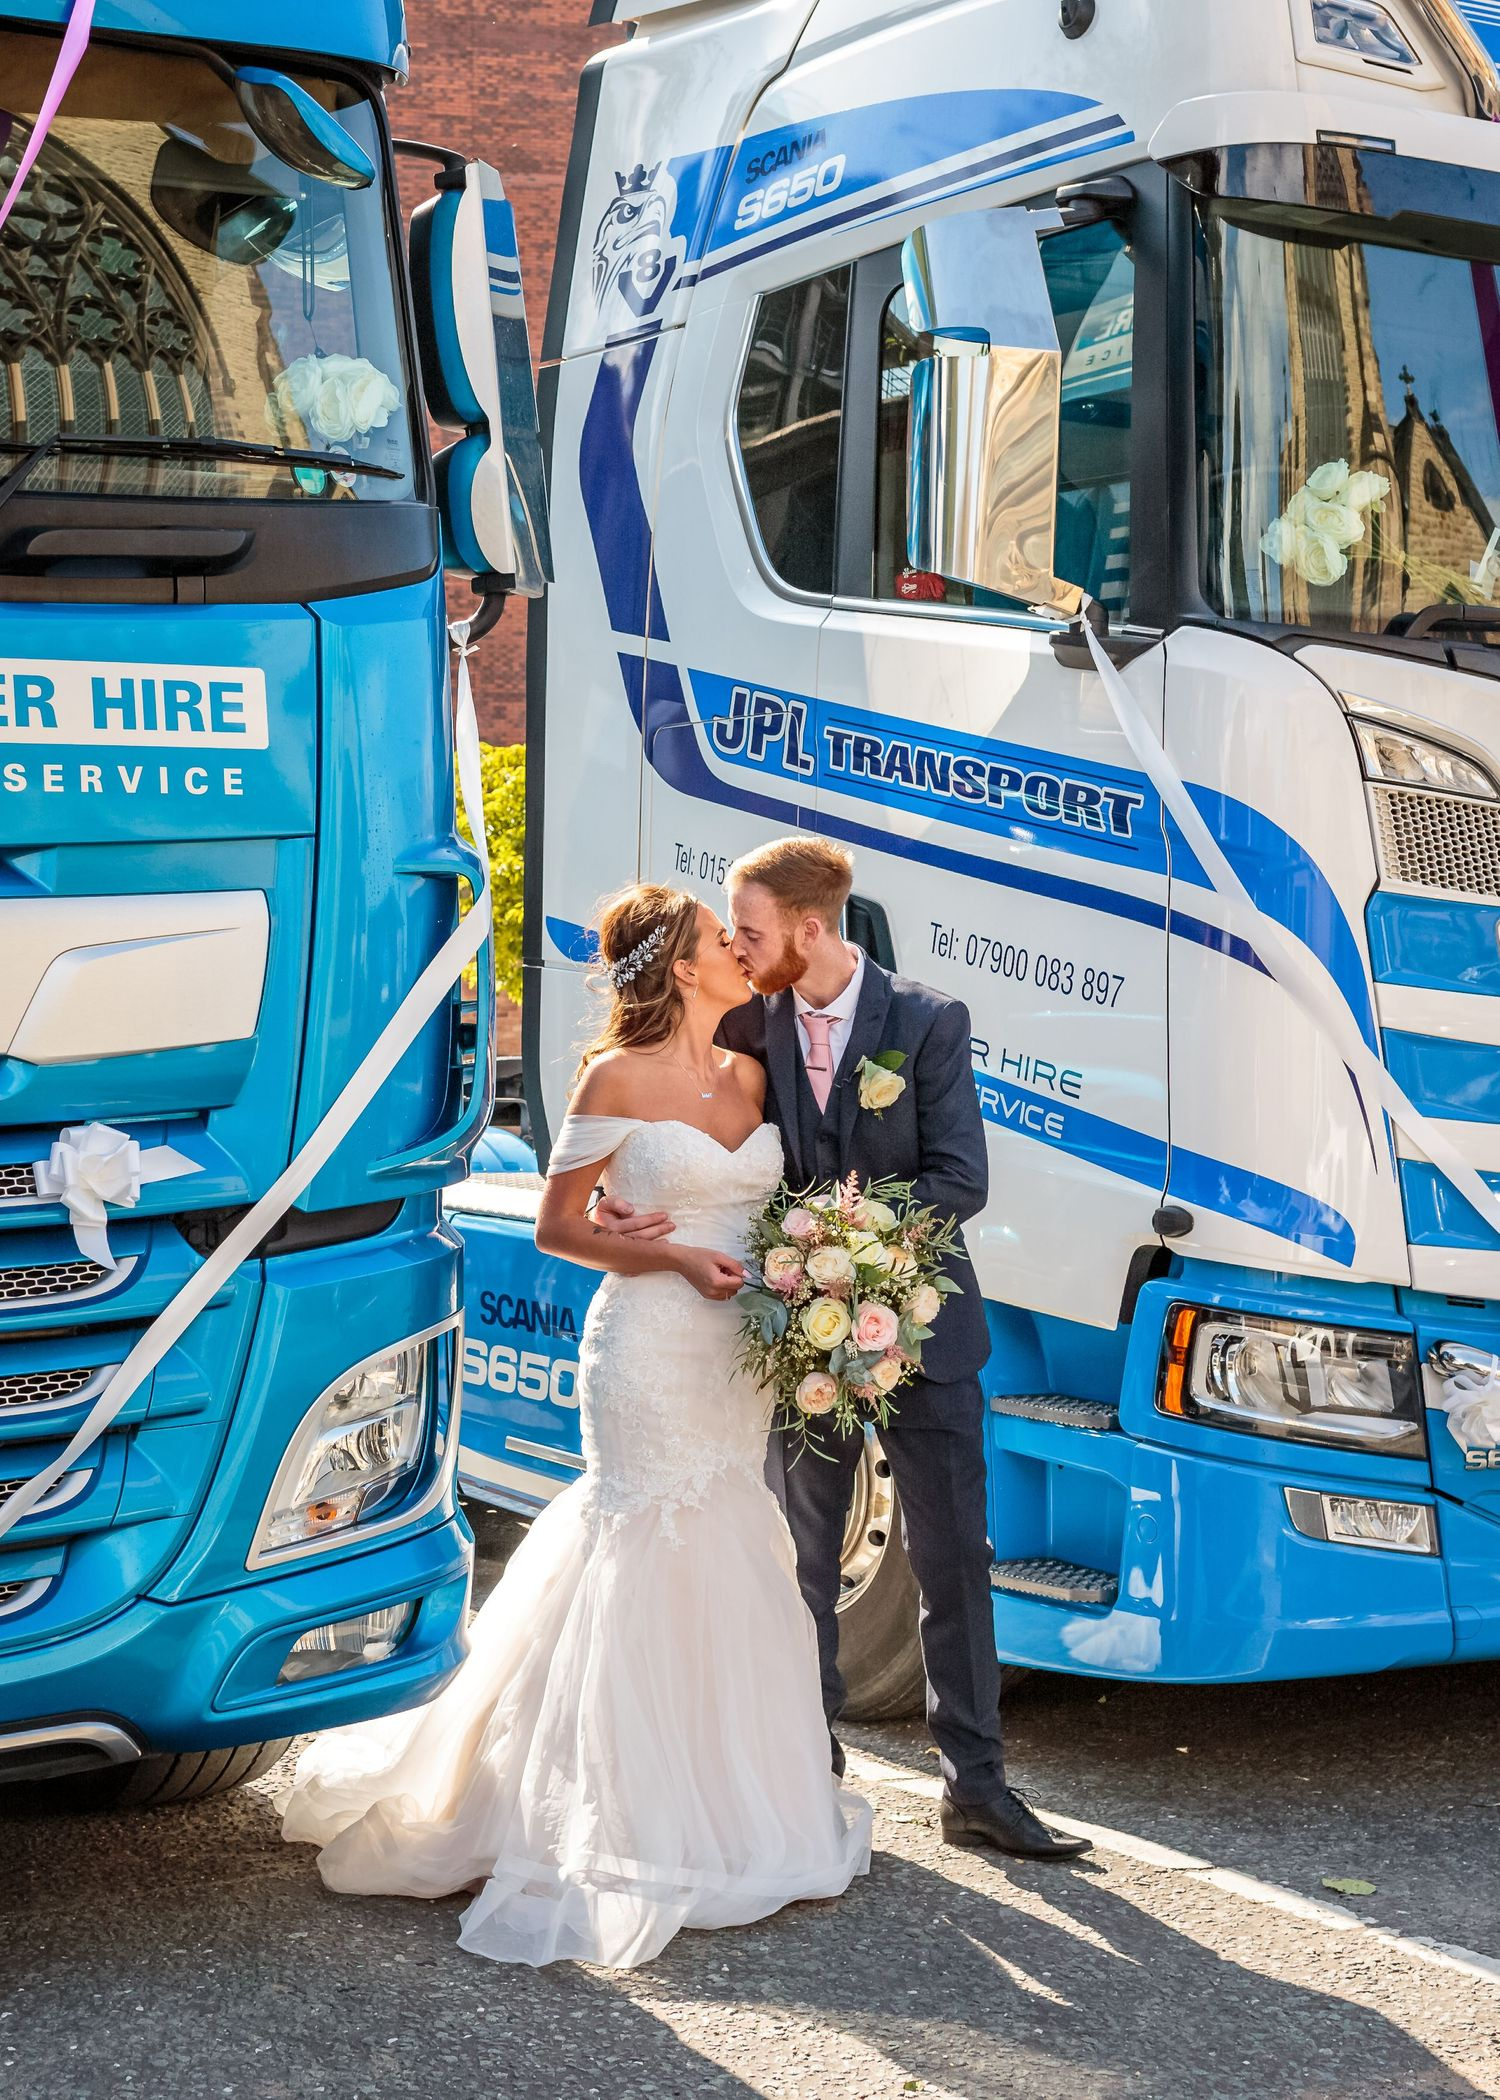 bride and groom kissing between to hgv cabs with wedding ribbons on the front